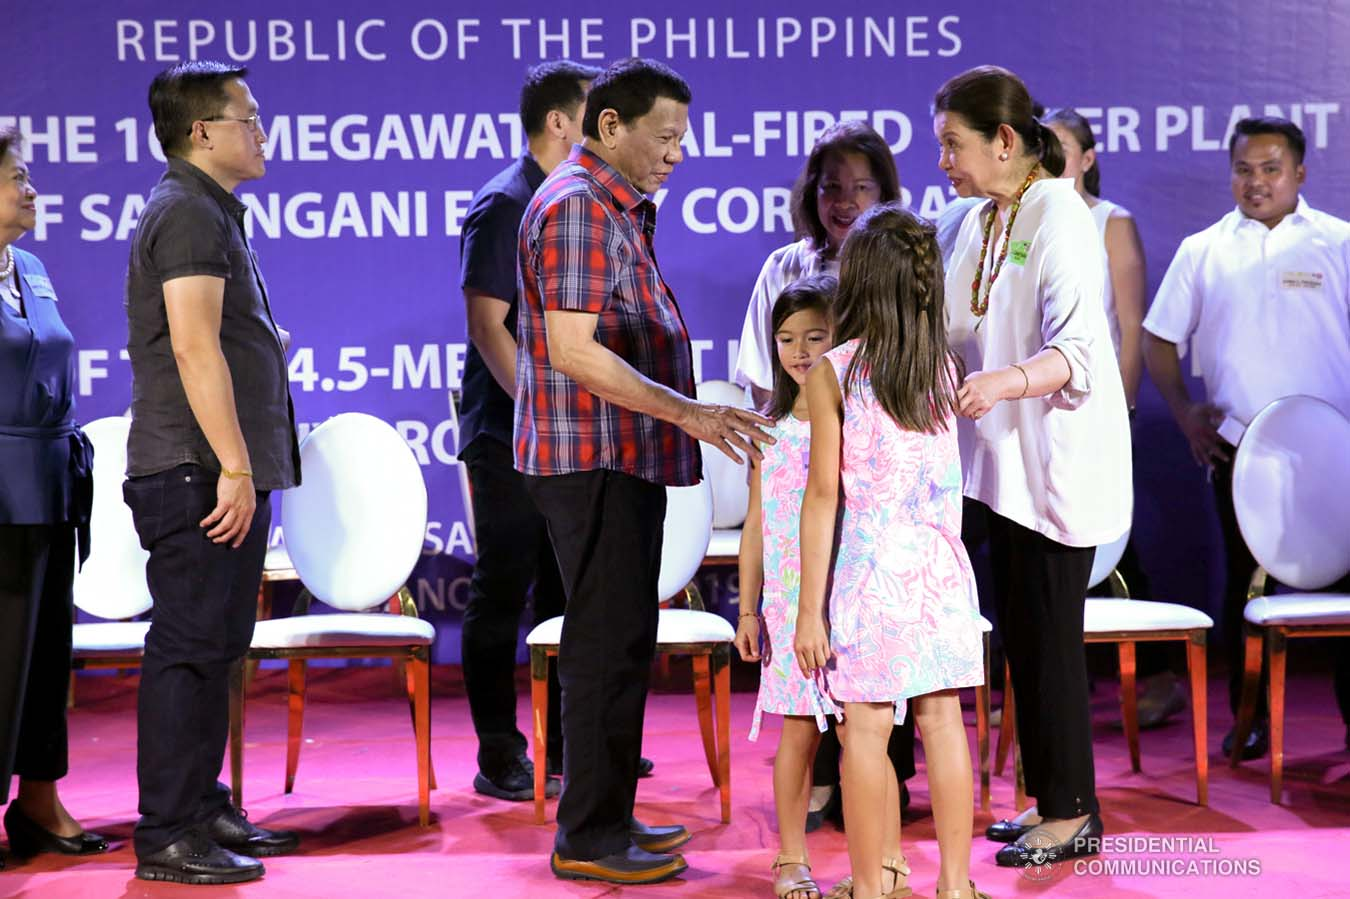 President Rodrigo Roa Duterte shares a light moment with some of the children in attendance during the inauguration of the 105-Megawatt Coal-Fired Power Plant Phase 2 of Sarangani Energy Corporation and the launch of the 14.5-Megawatt Hydropower Project of Siguil Hydro Power Corporation in Maasim, Sarangani Province on November 22, 2019. SIMEON CELI JR./PRESIDENTIAL PHOTO